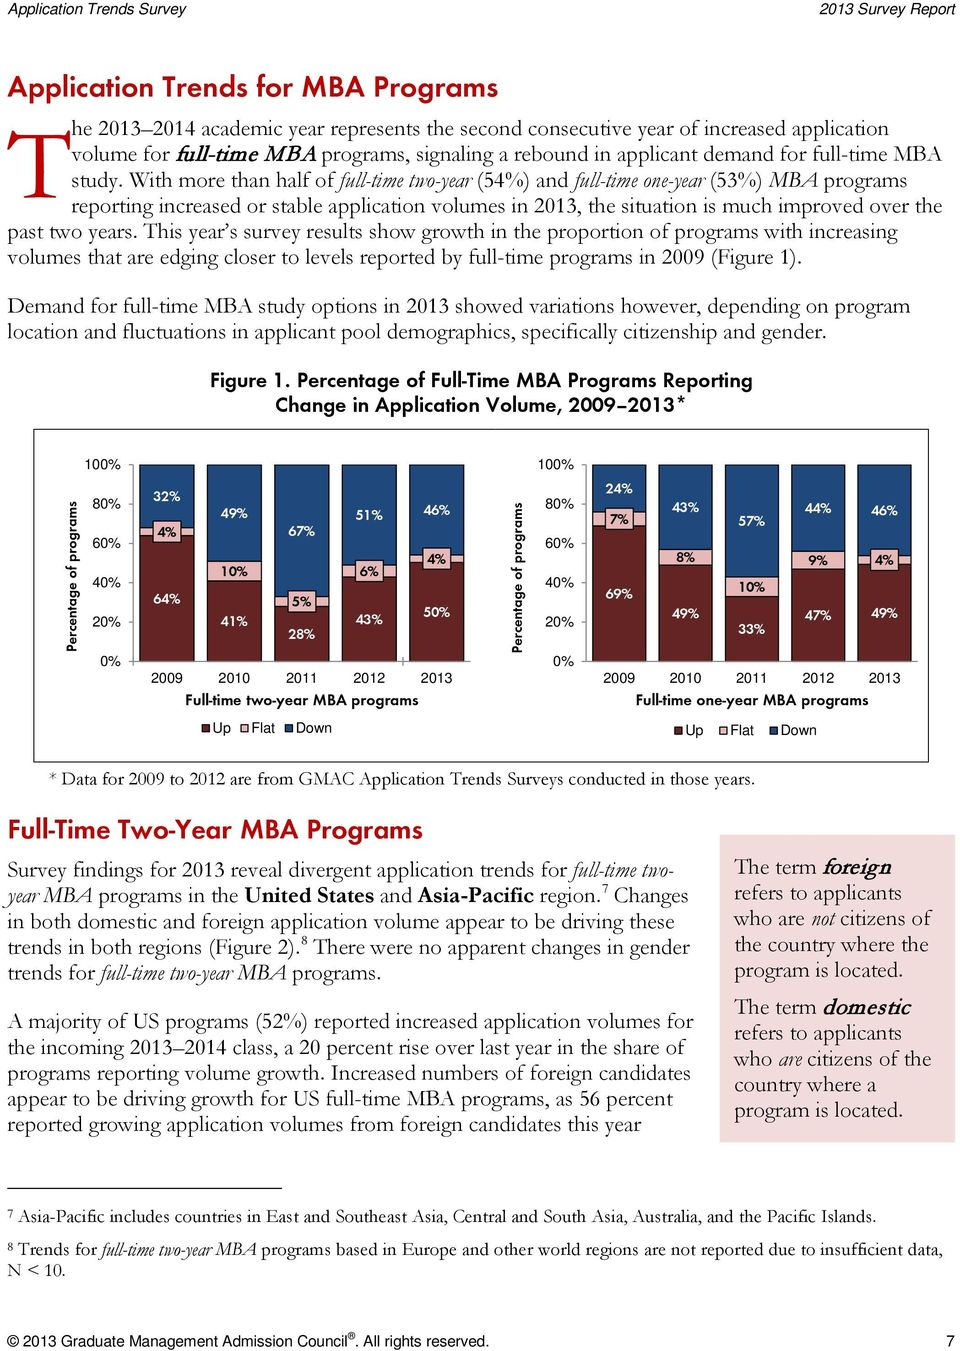 With more than half of full-time two-year (54%) and full-time one-year (53%) programs reporting increased or stable application volumes in 2013, the situation is much improved over the past two years.